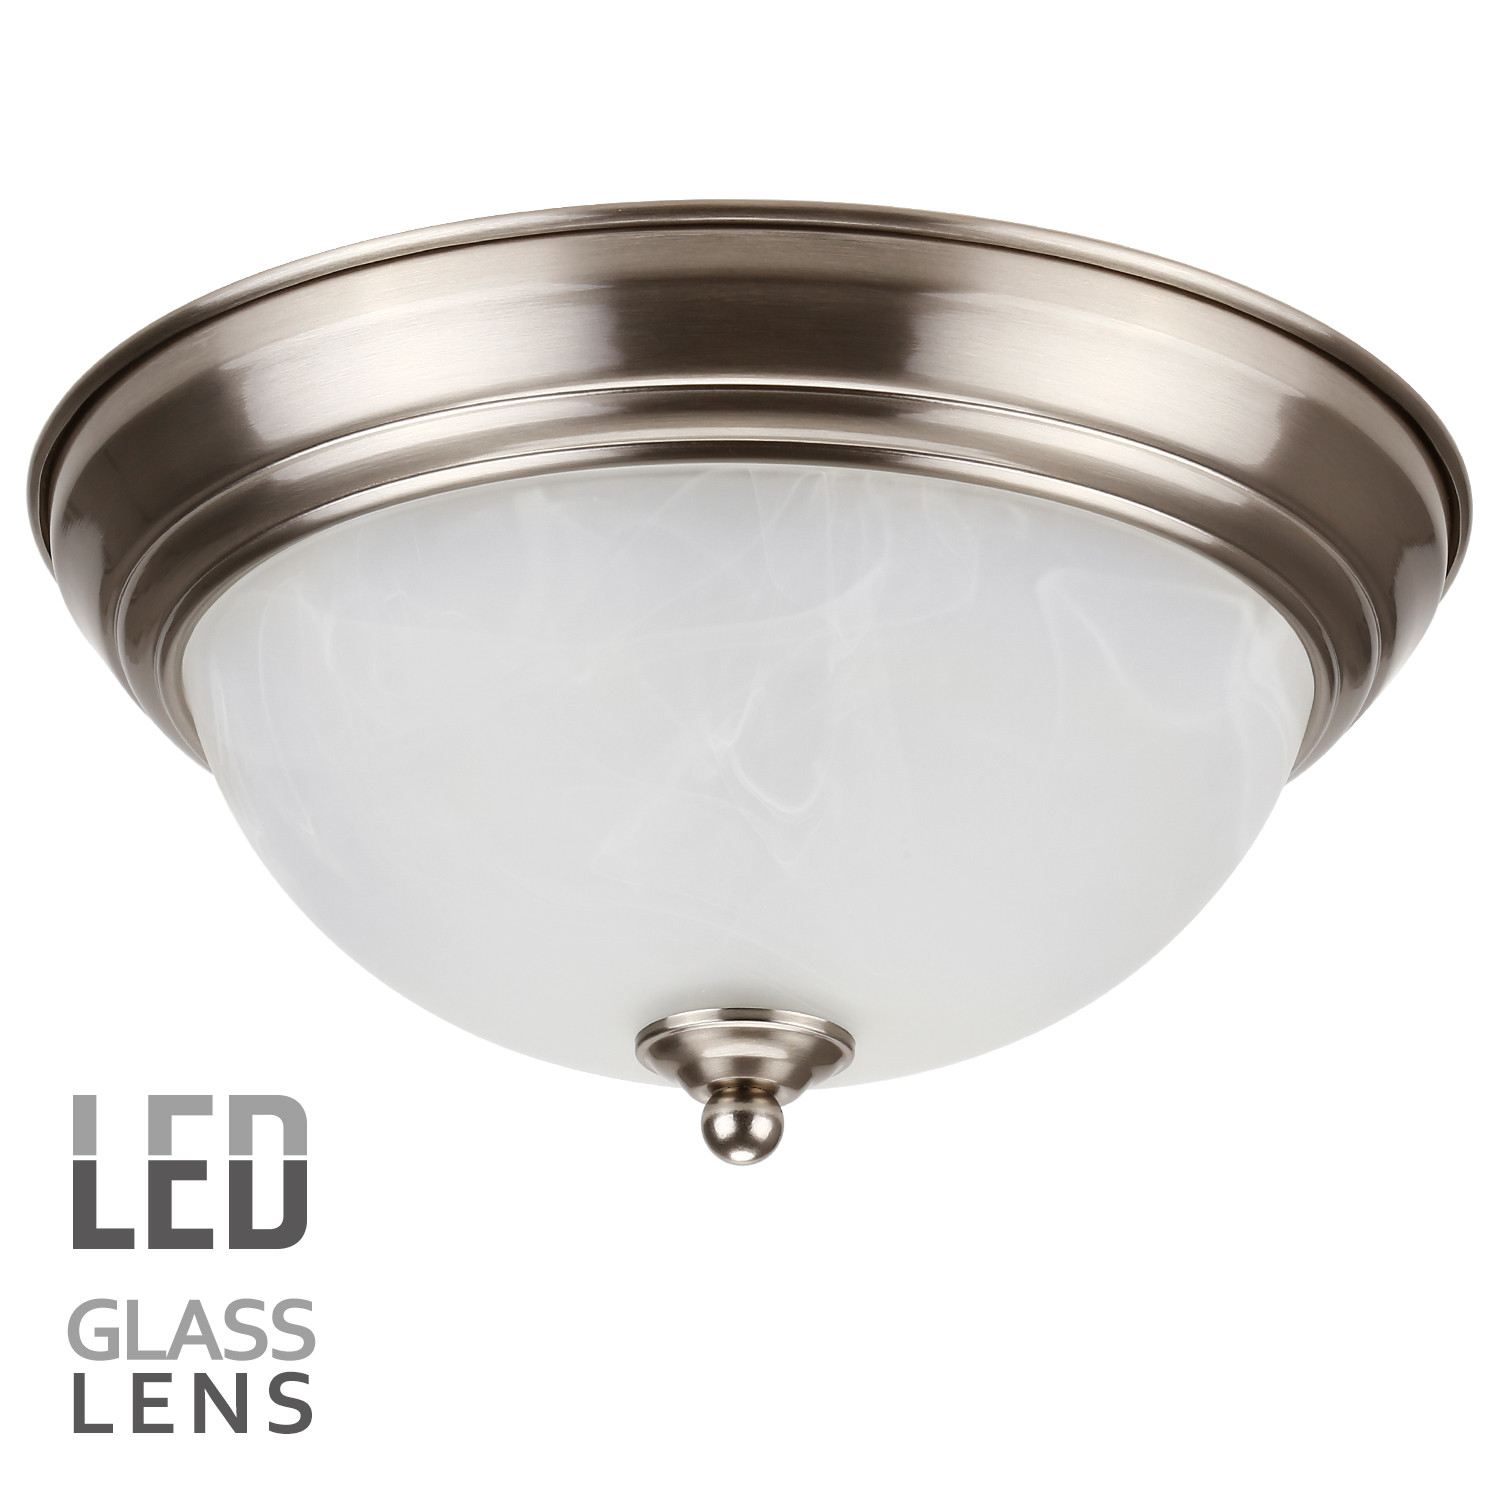 LEONLITE Dimmable 11-Inch LED Flush Mount Ceiling Light Fixture, Alabaster Glass Shade, 15W (80W Equivalent), 3000K Warm White, ETL Listed, 5 YEARS WARRANTY, Satin Nickel